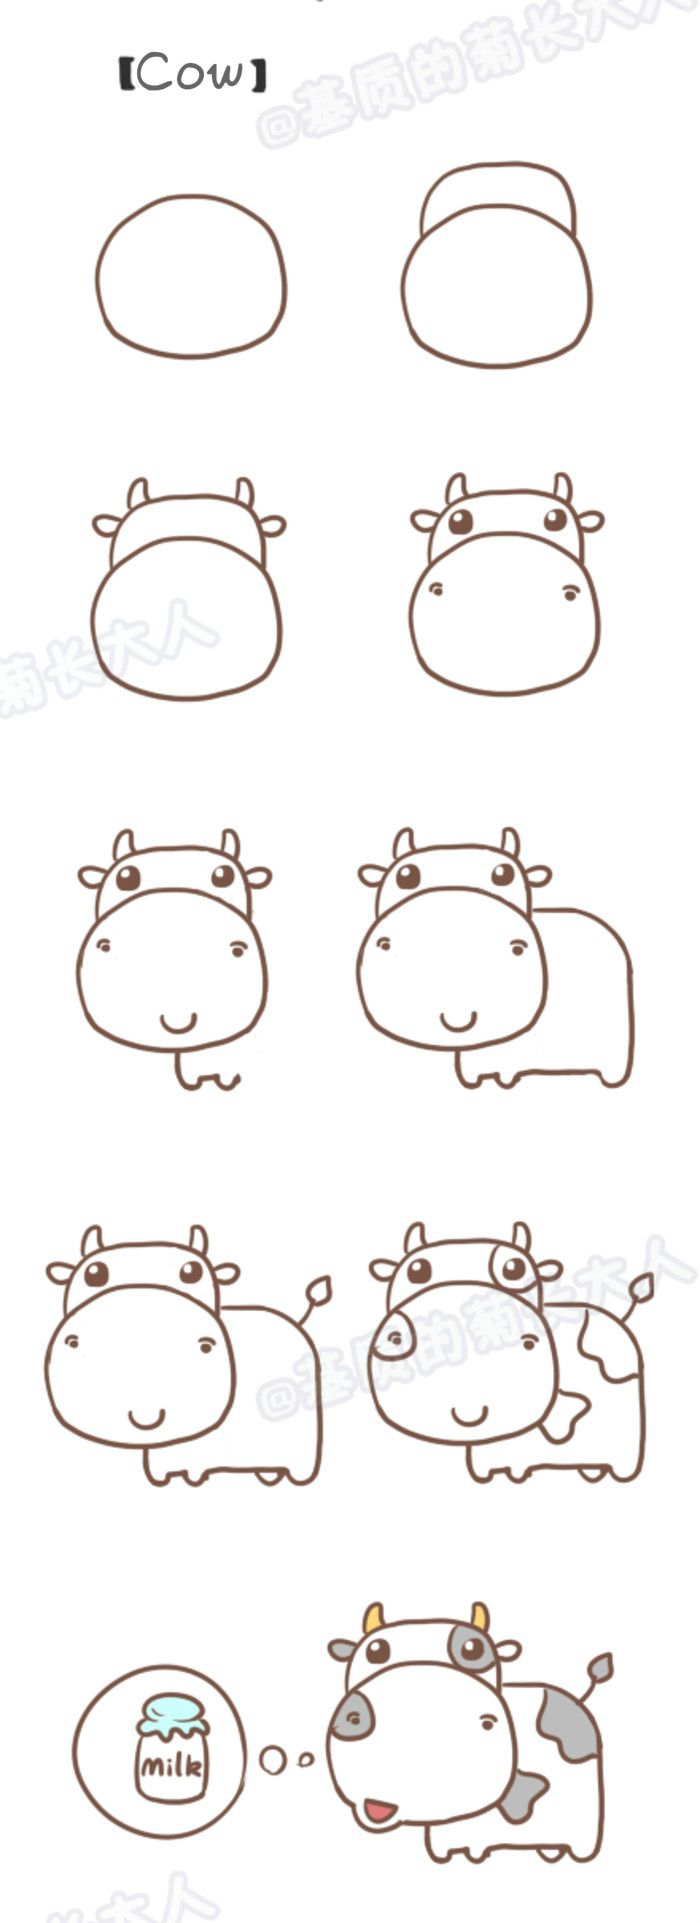 Such a cute lil baby cow! Easy steps to draw.